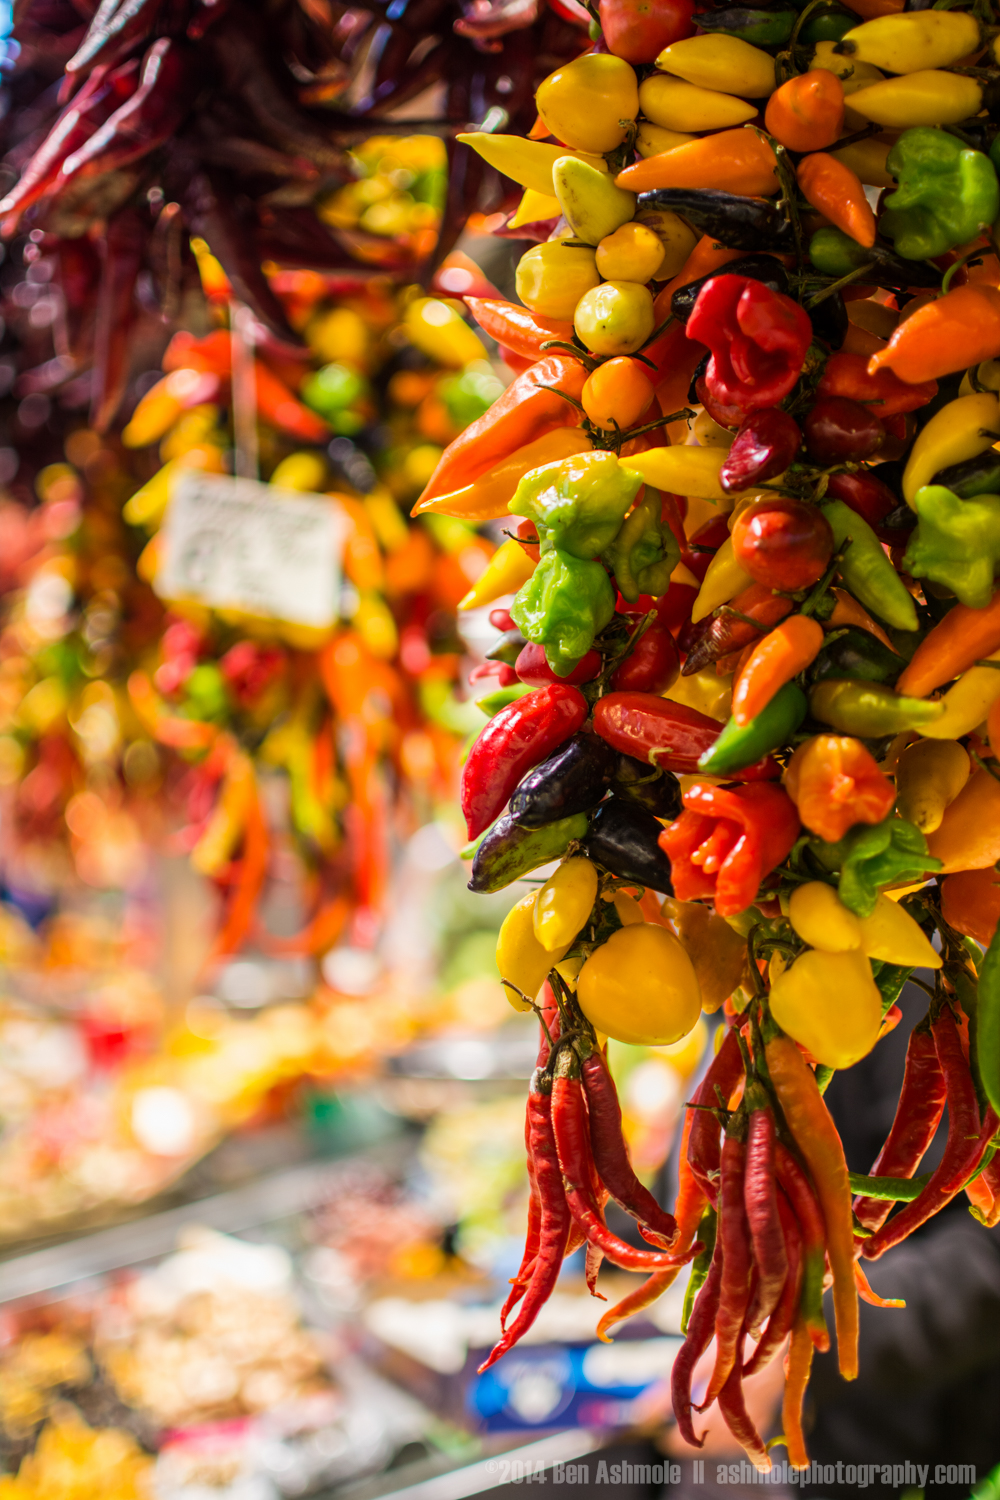 Hanging Chilli Peppers 3, La Boqueria, Barcelona, Spain